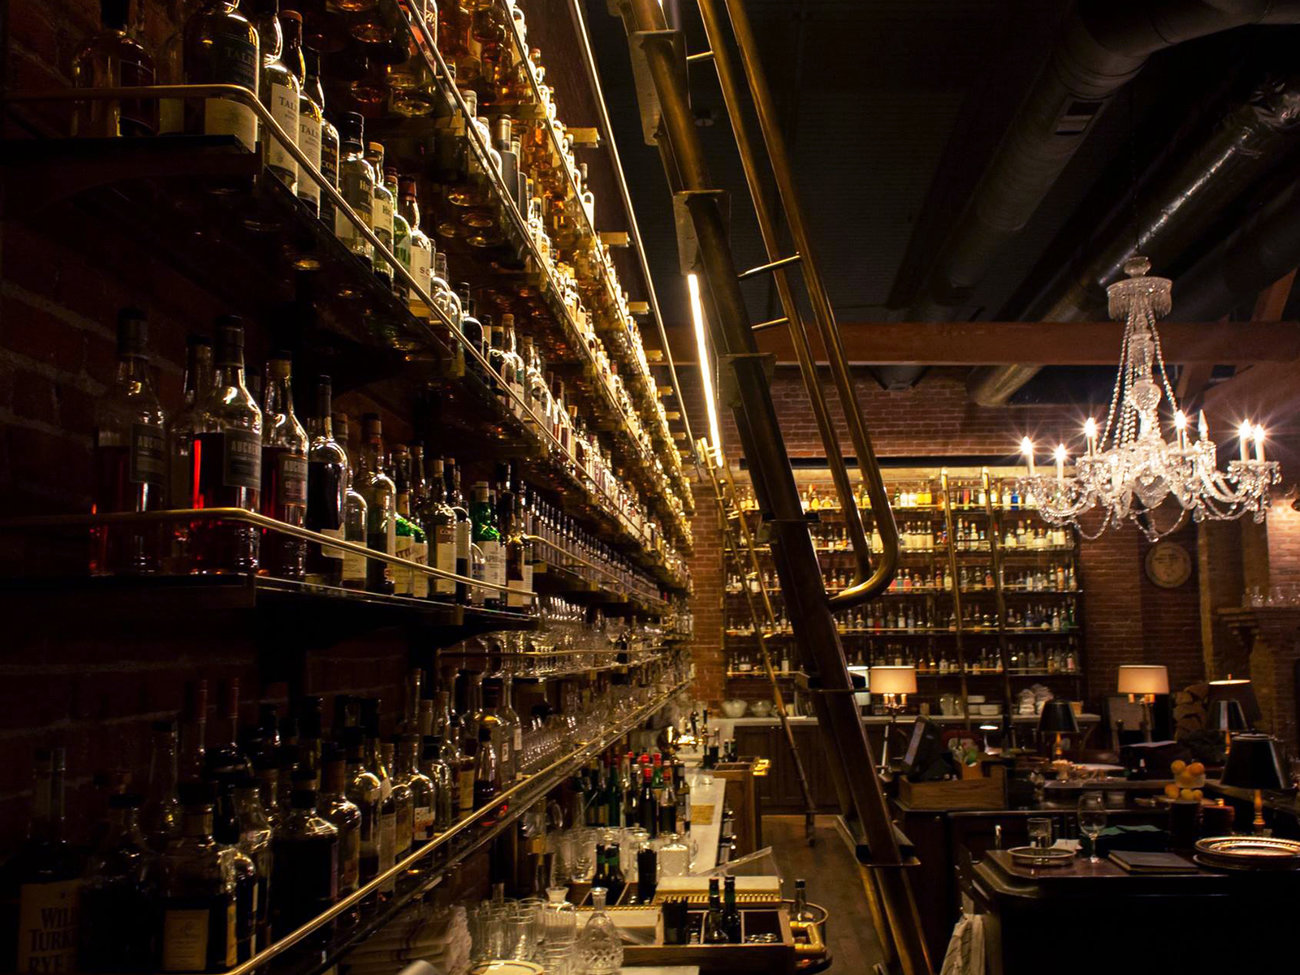 Multnomah Whiskey Library Bar in Portland